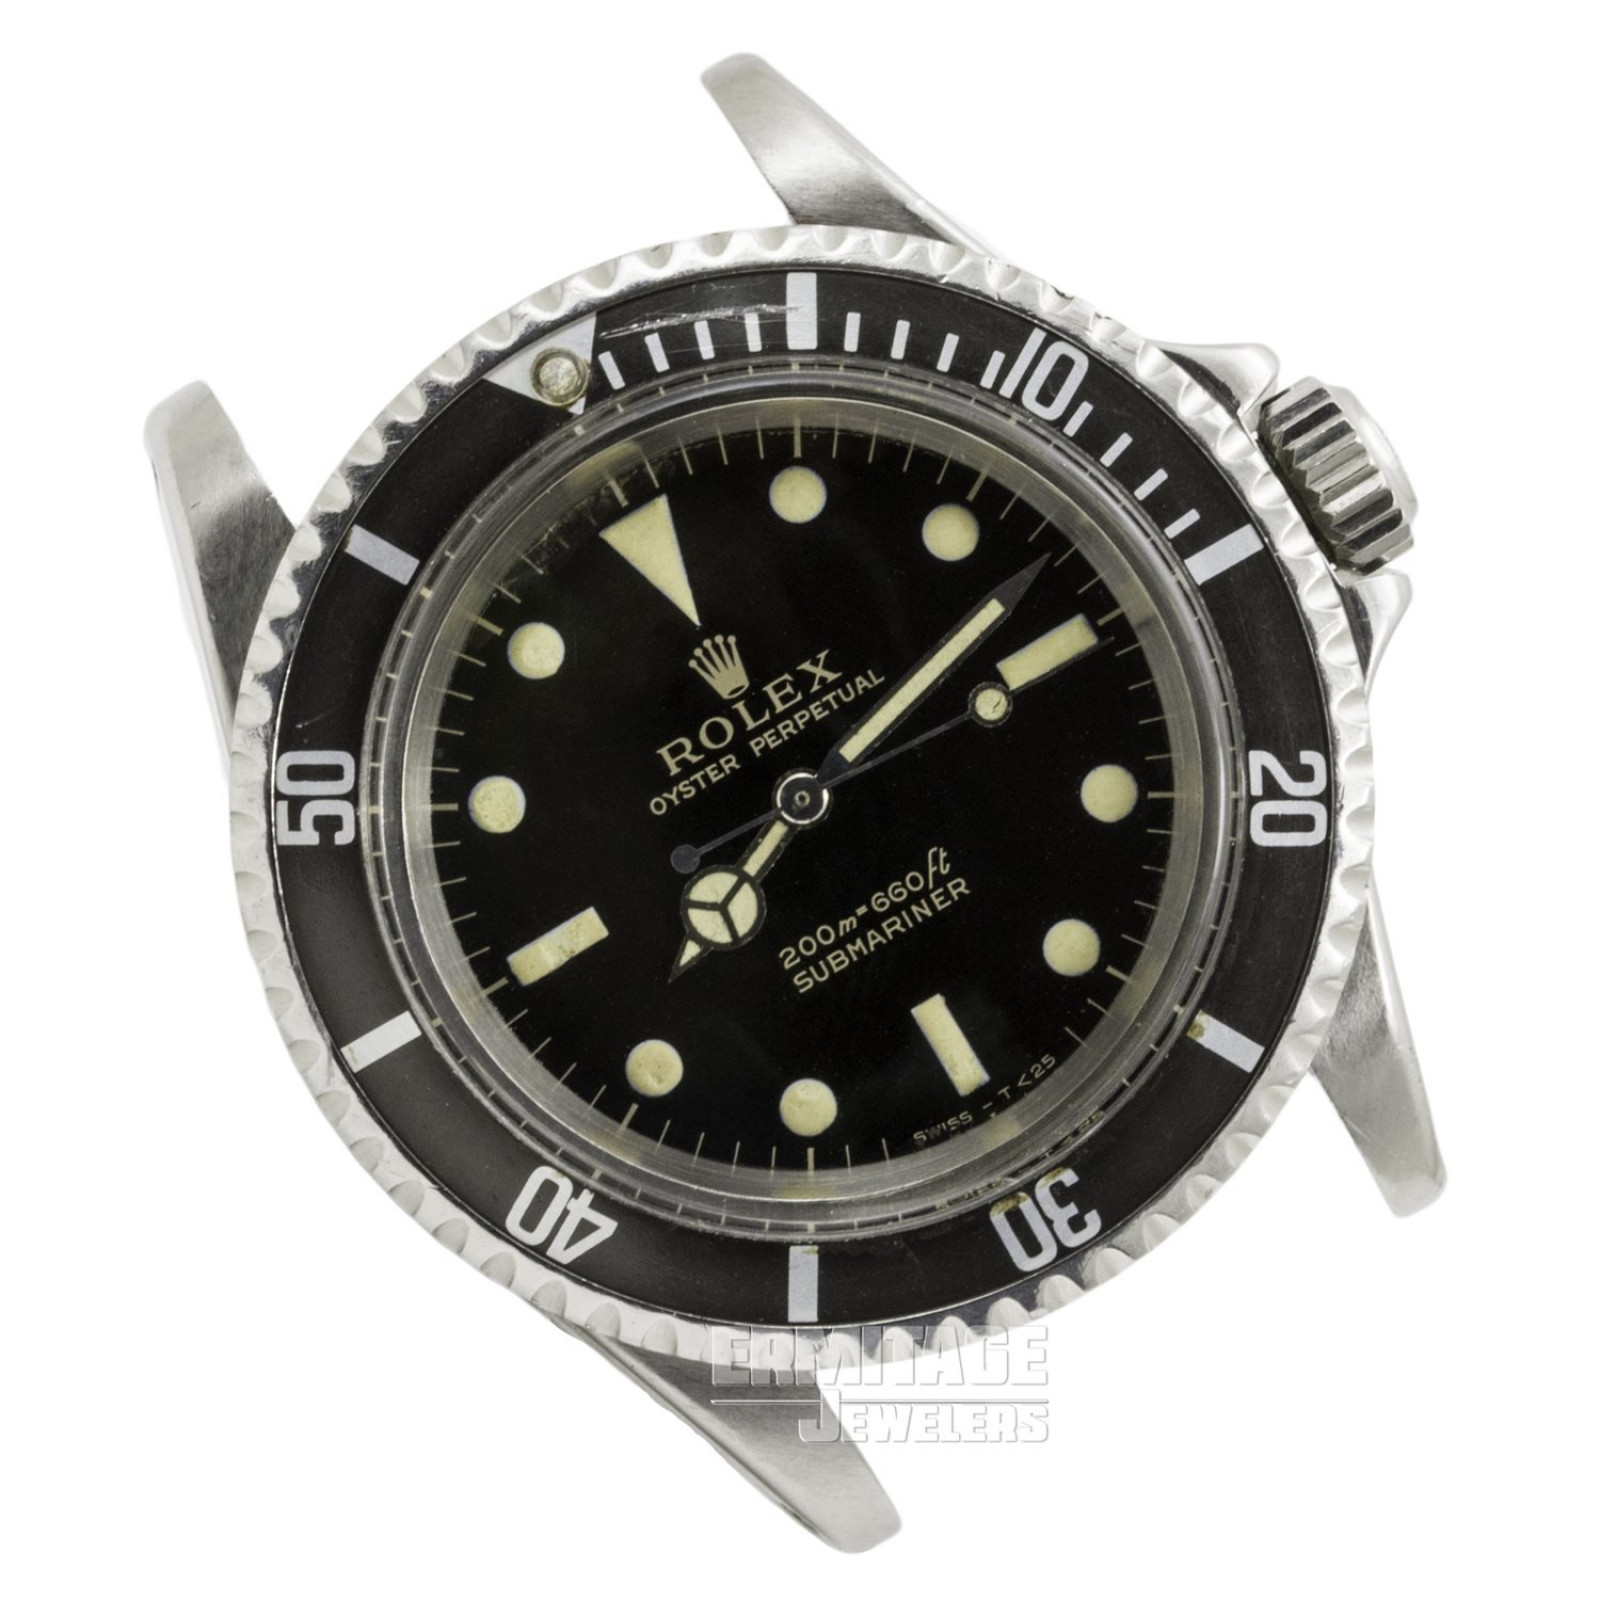 Steel on Riveted Rolex Submariner 5513 40 mm